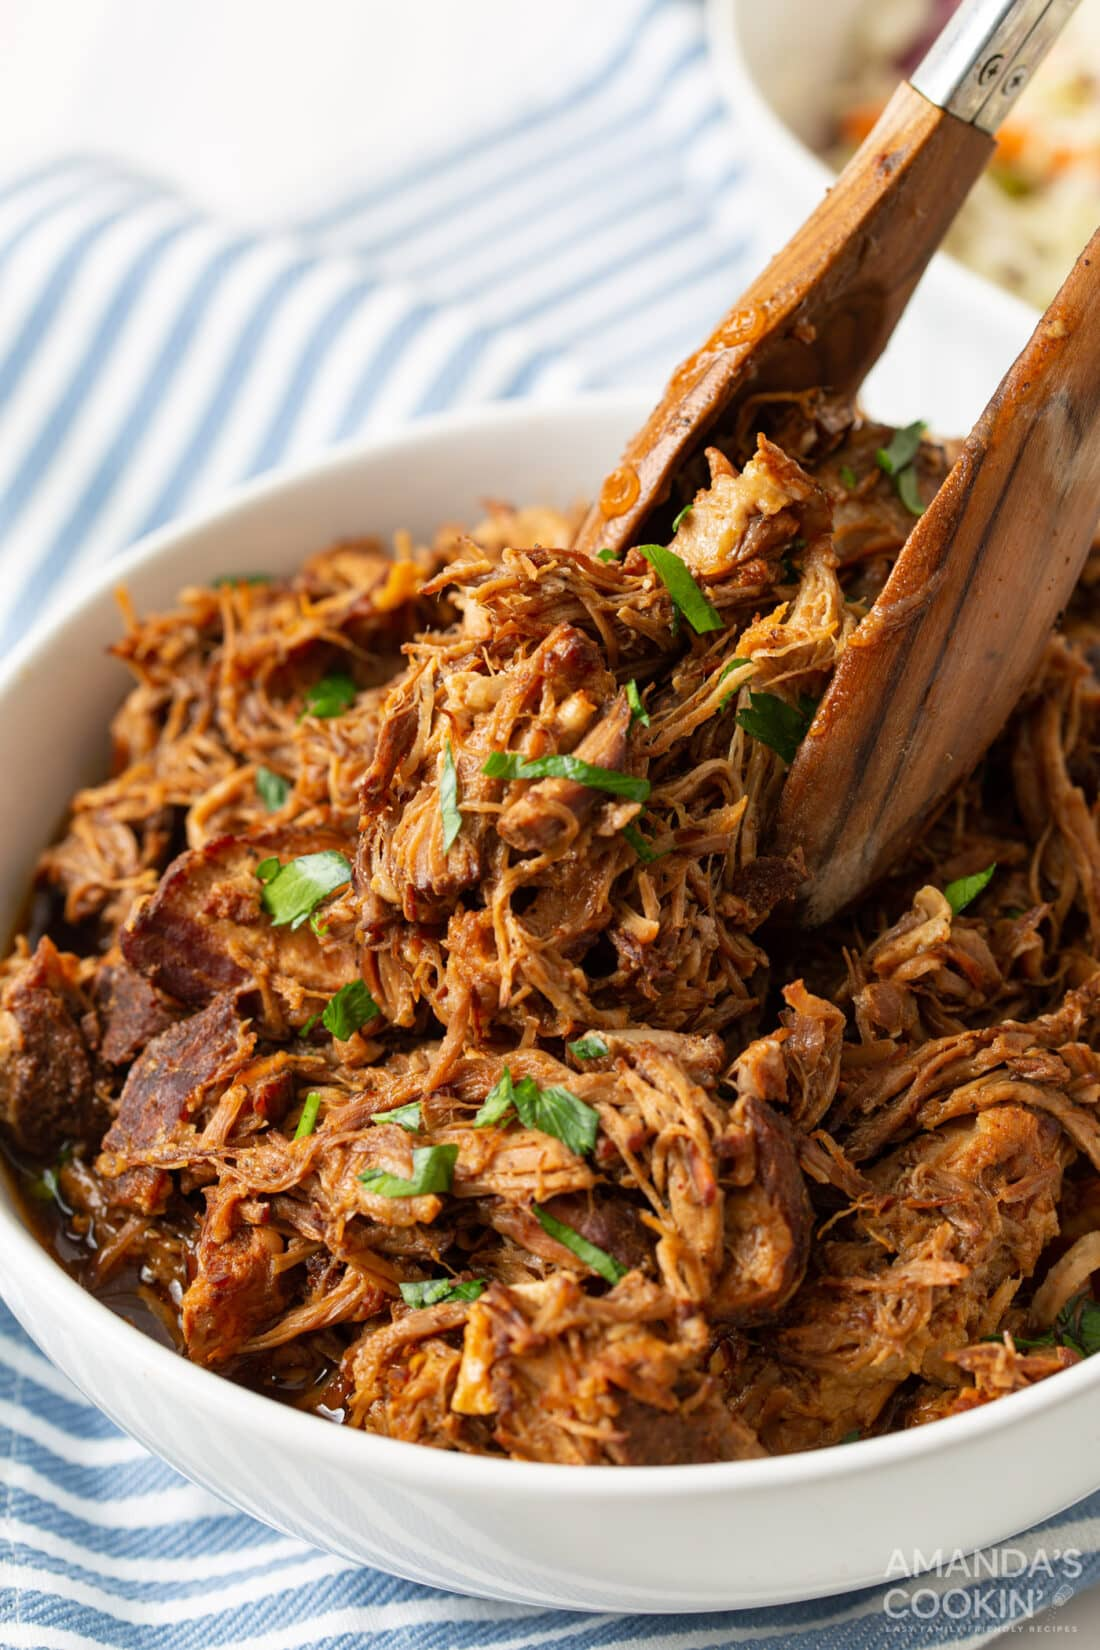 tongs in a bowl of Instant Pot Pulled Pork